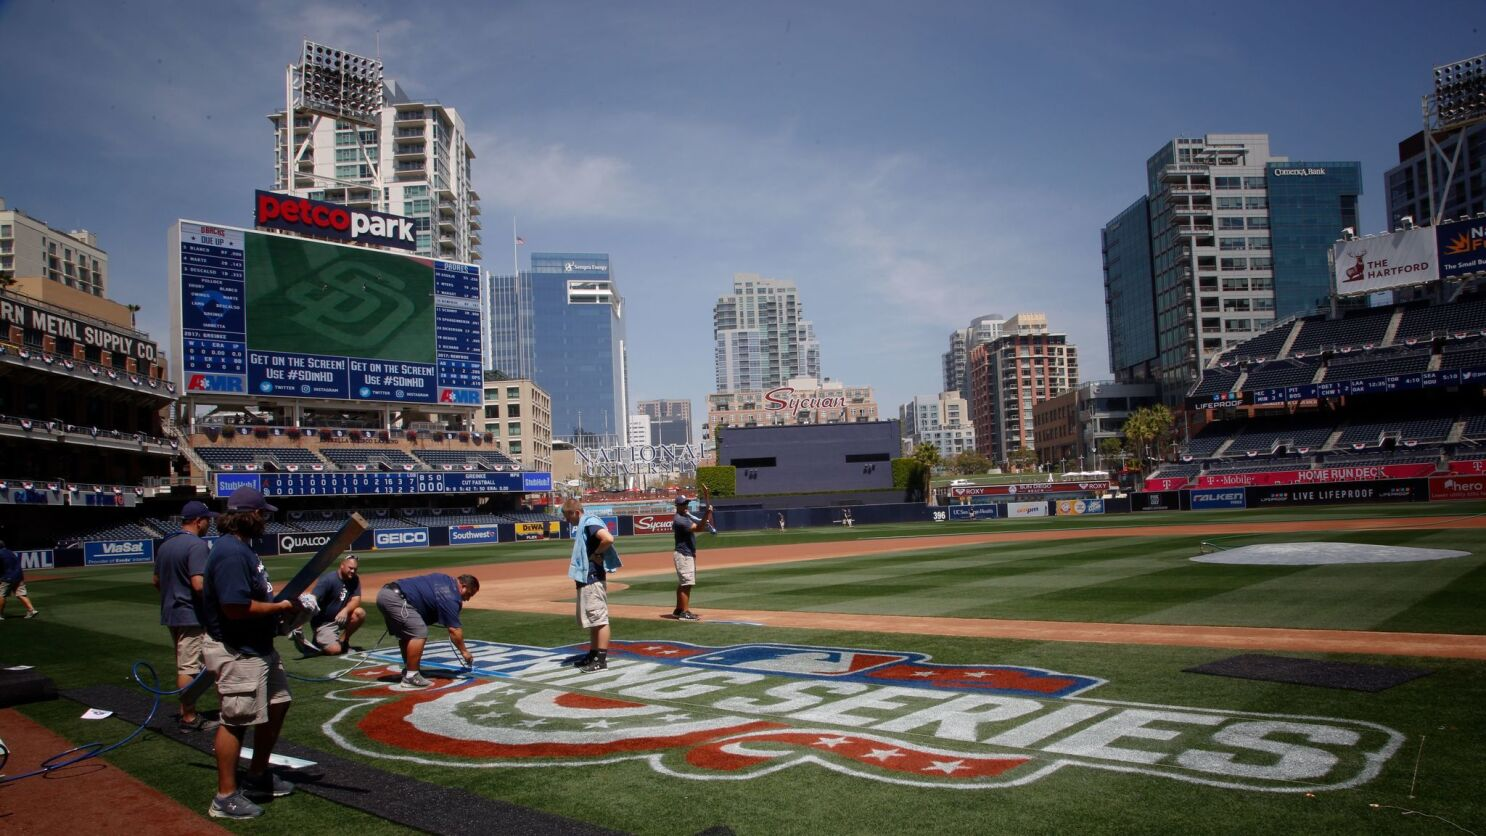 c6ba15b06b3203 Padres to add right-field video board to Petco Park - The San Diego ...